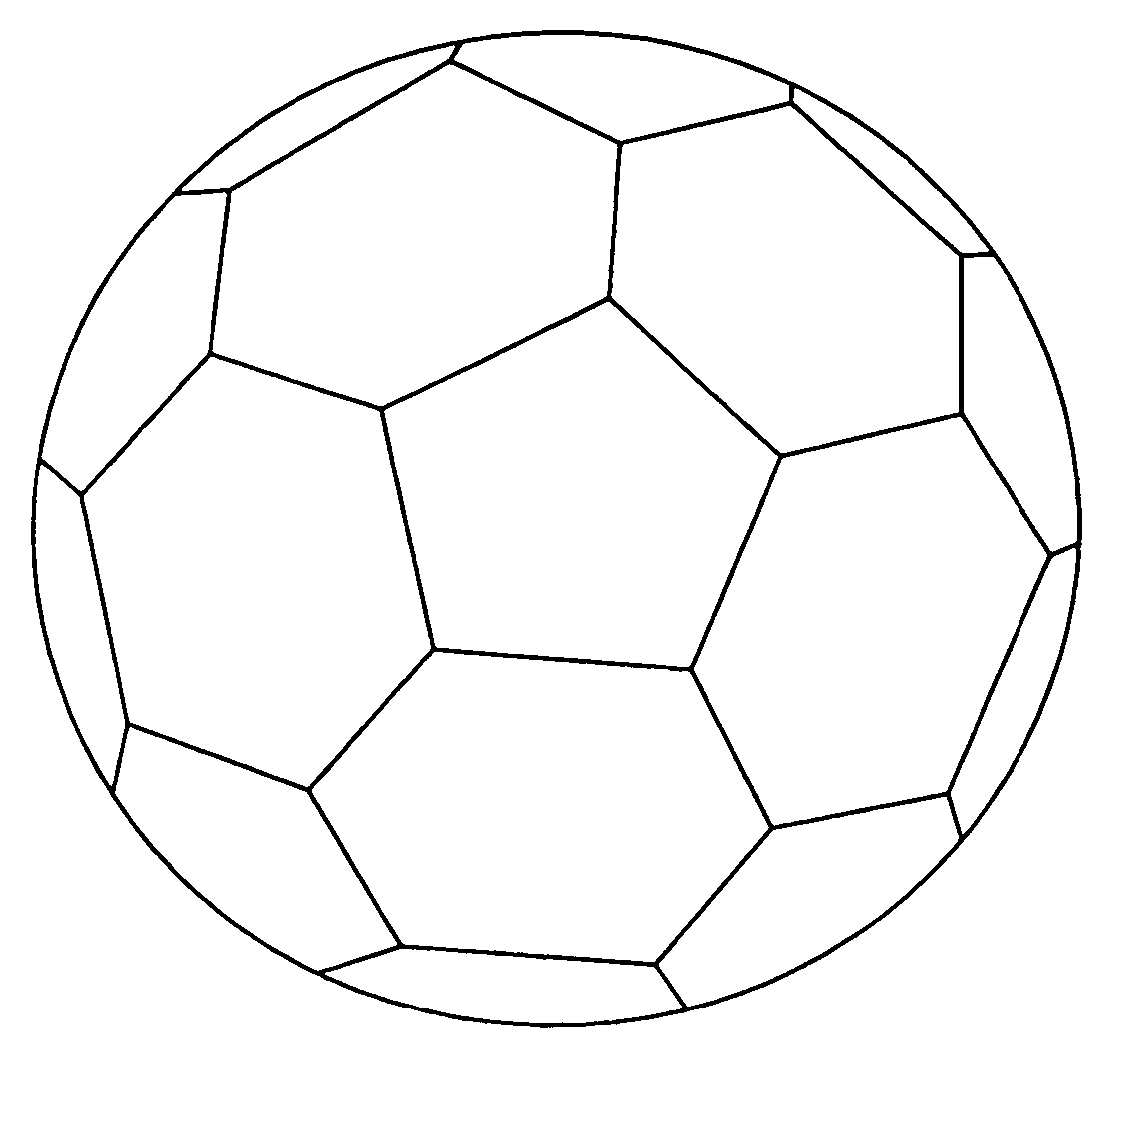 colouring picture of a ball ball coloring pages coloring pages to download and print colouring picture ball of a